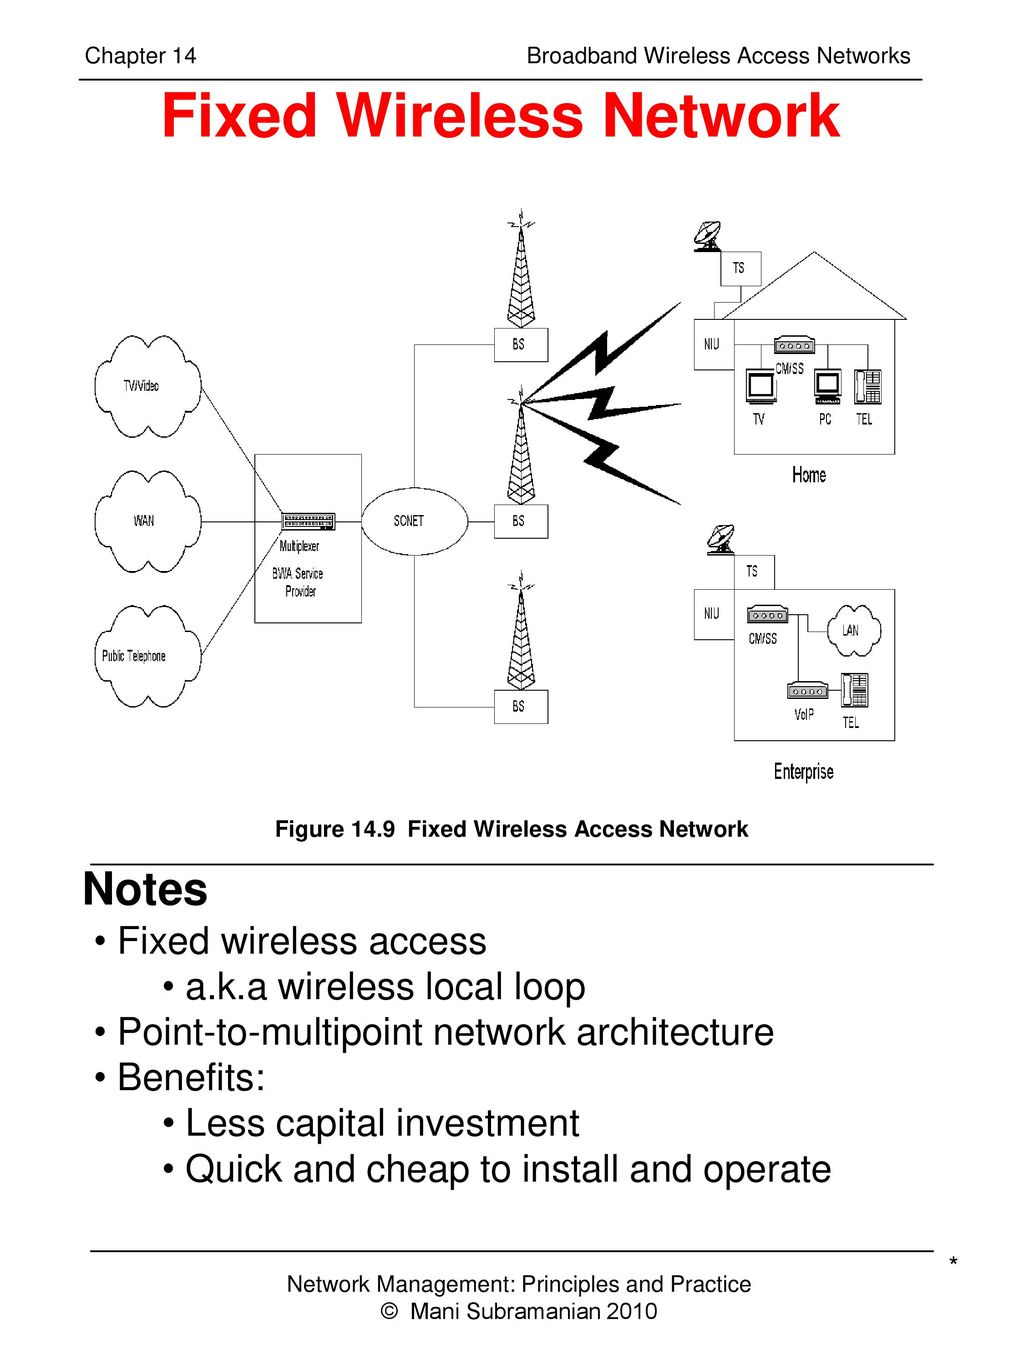 Chapter 14 Broadband Wireless Access Networks Ppt Download Network Architecture Diagram Fixed